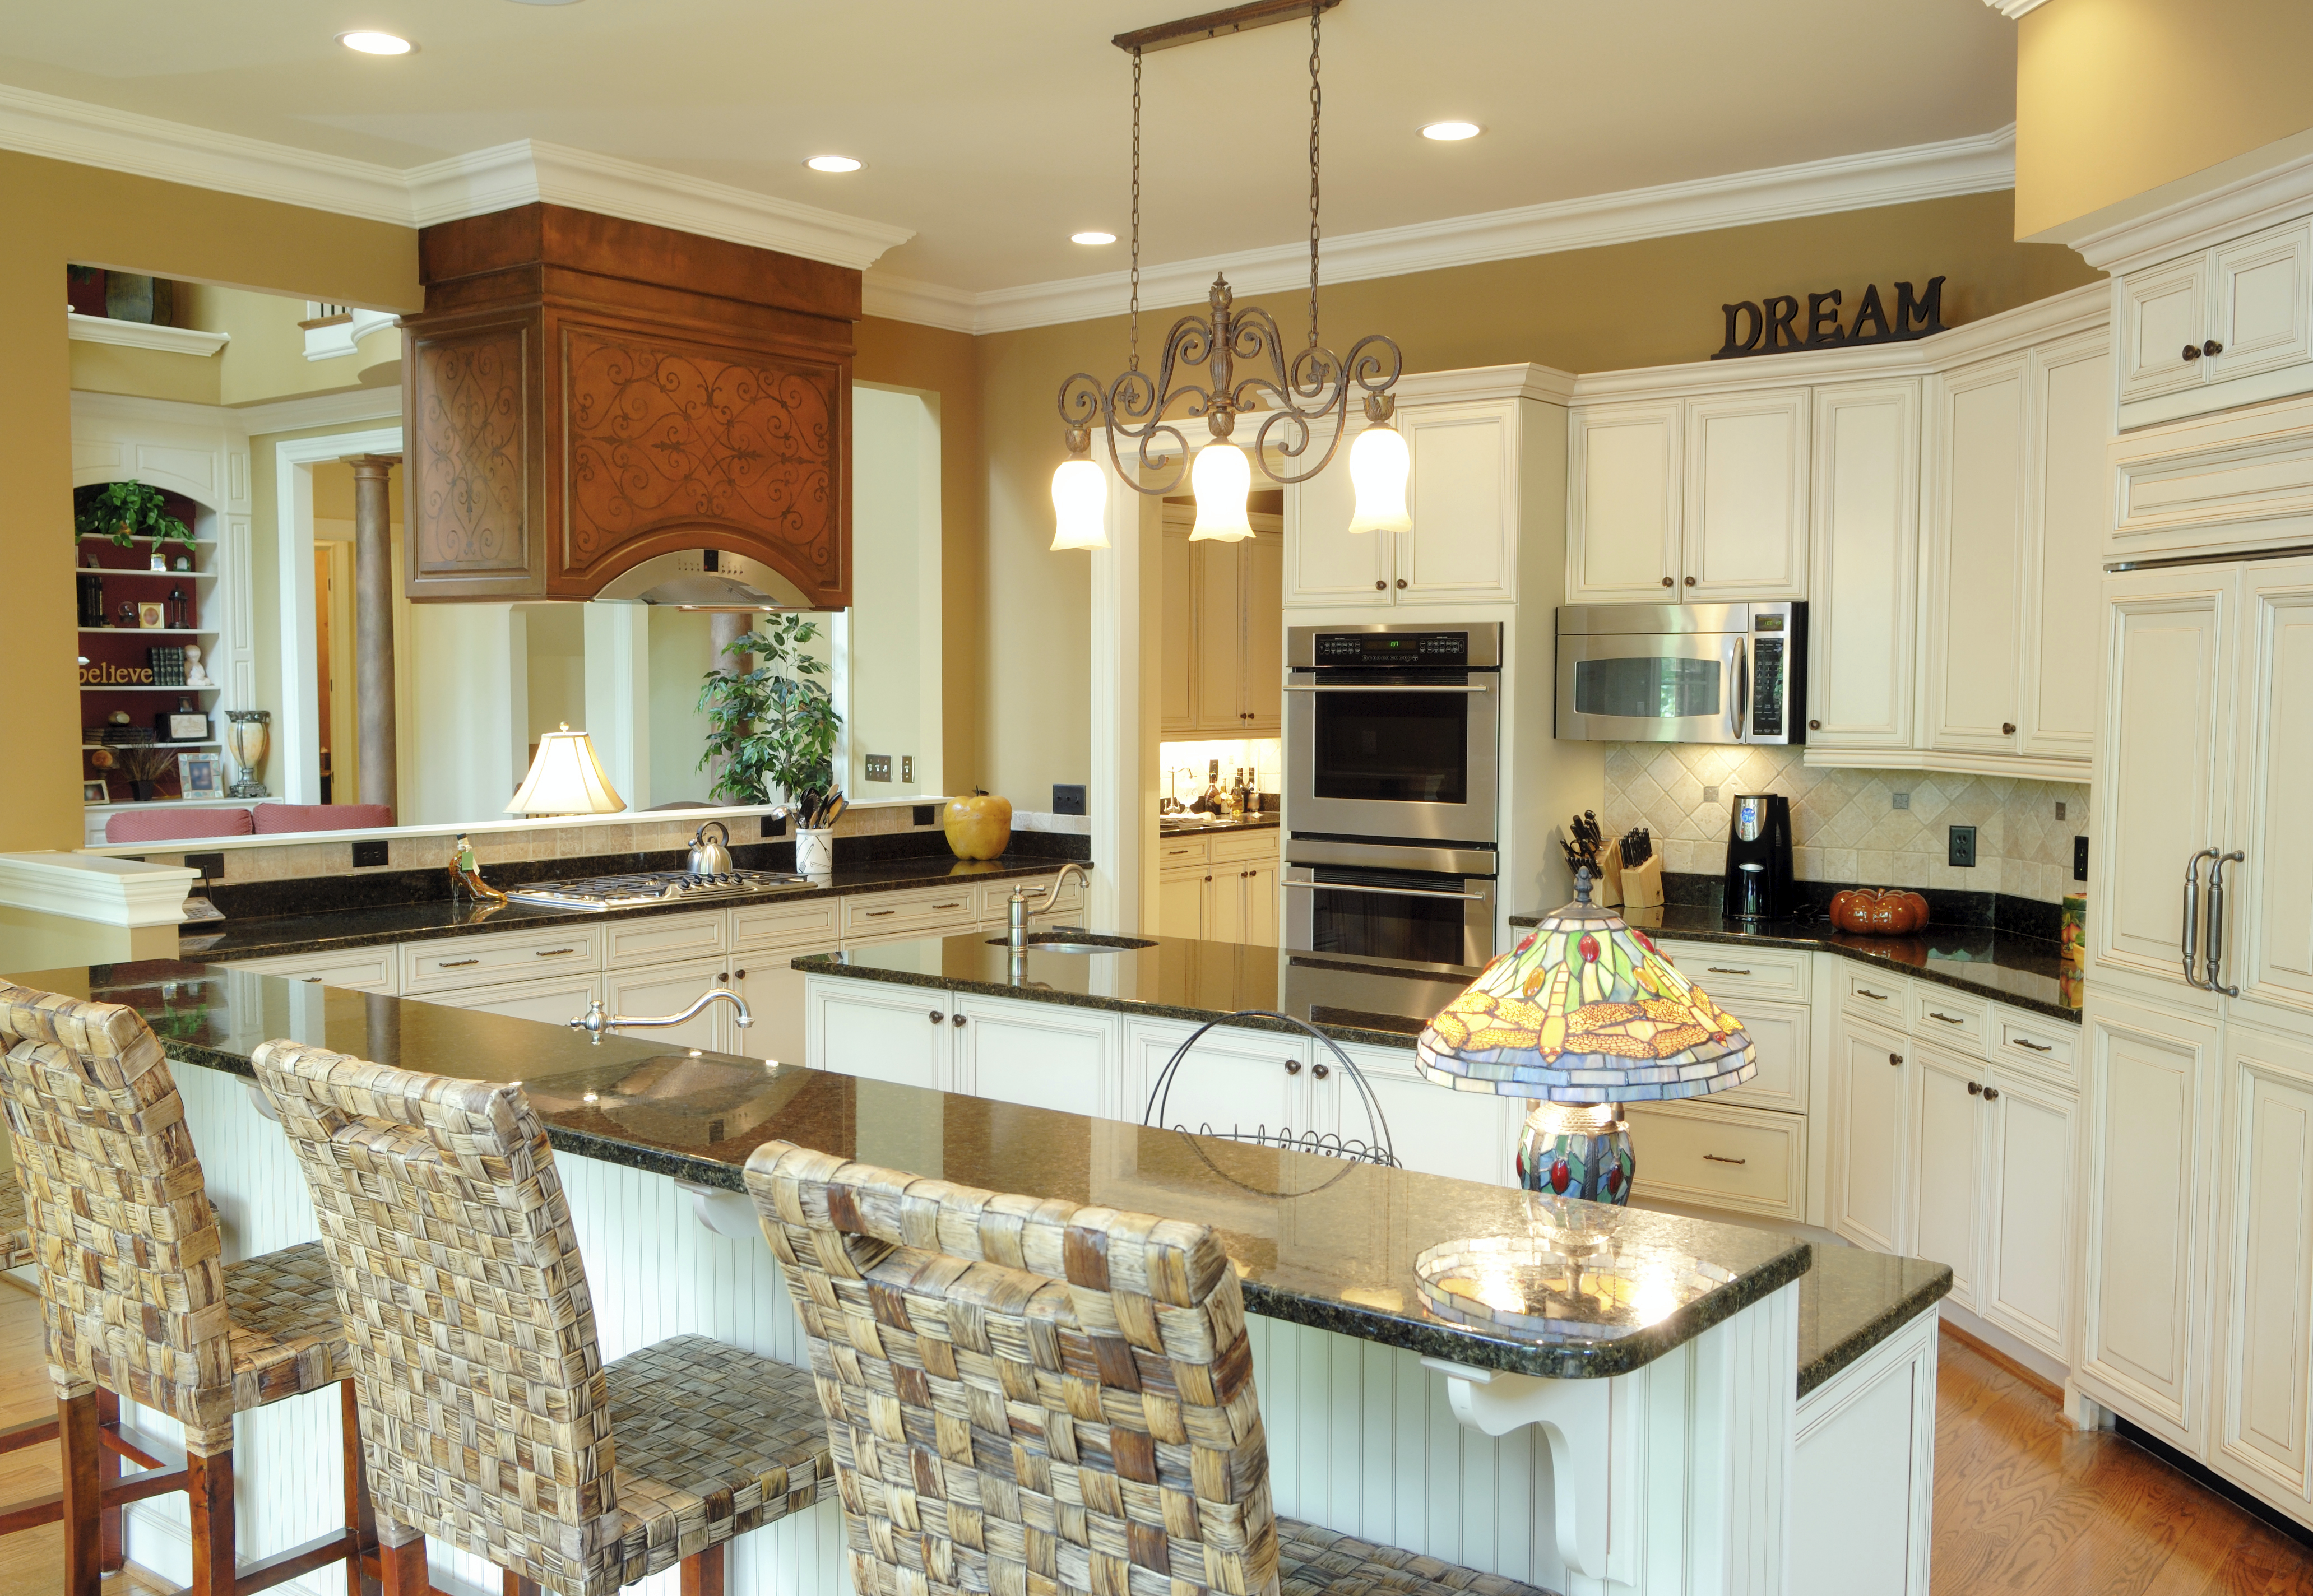 white kitchen designs pictures kitchen with white cabinets Spacious country kitchen with white cabinetry throughout with mustard yellow walls